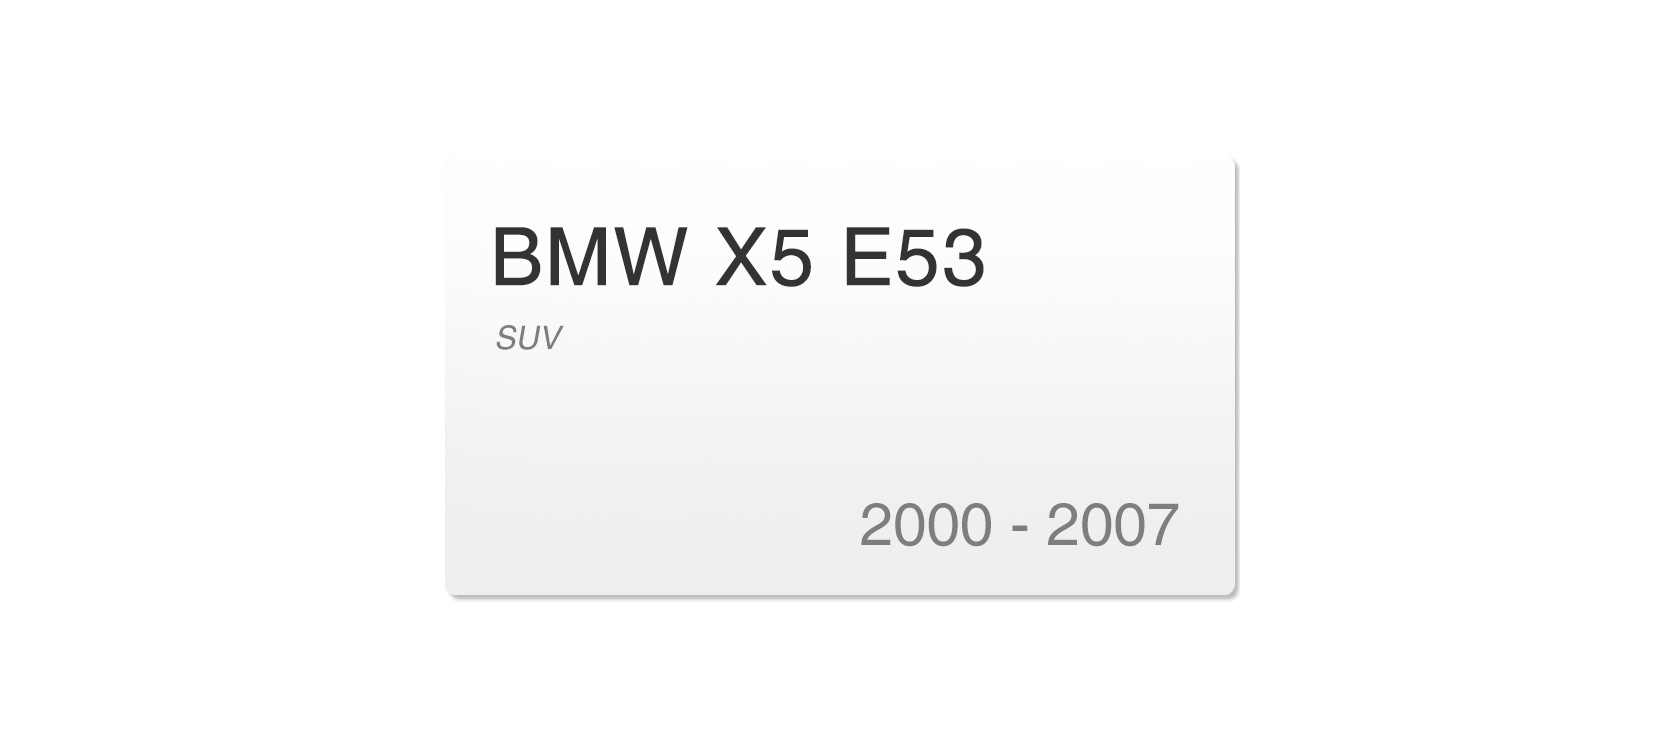 BMW X5 E53 (2000-2007) | Headlight lens plastic covers